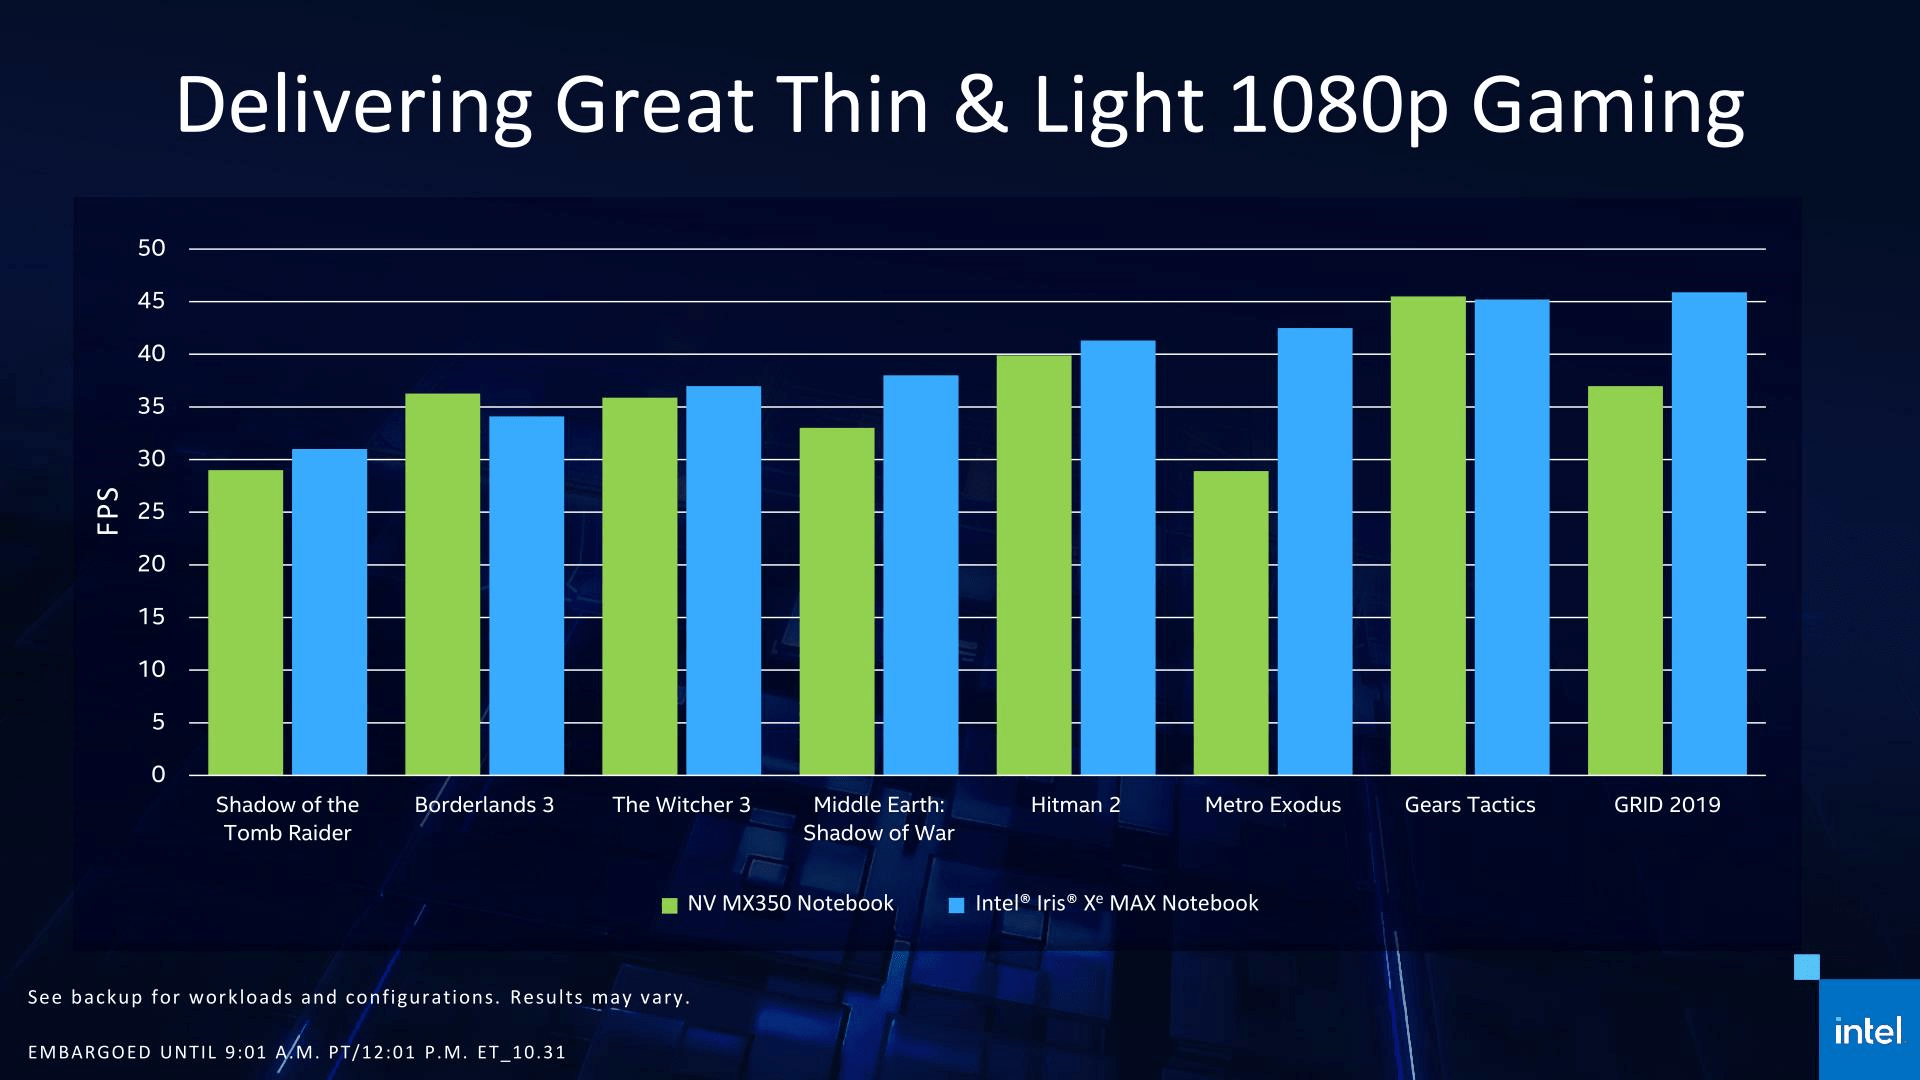 Intel Officially Launches Iris Max Based on DG1